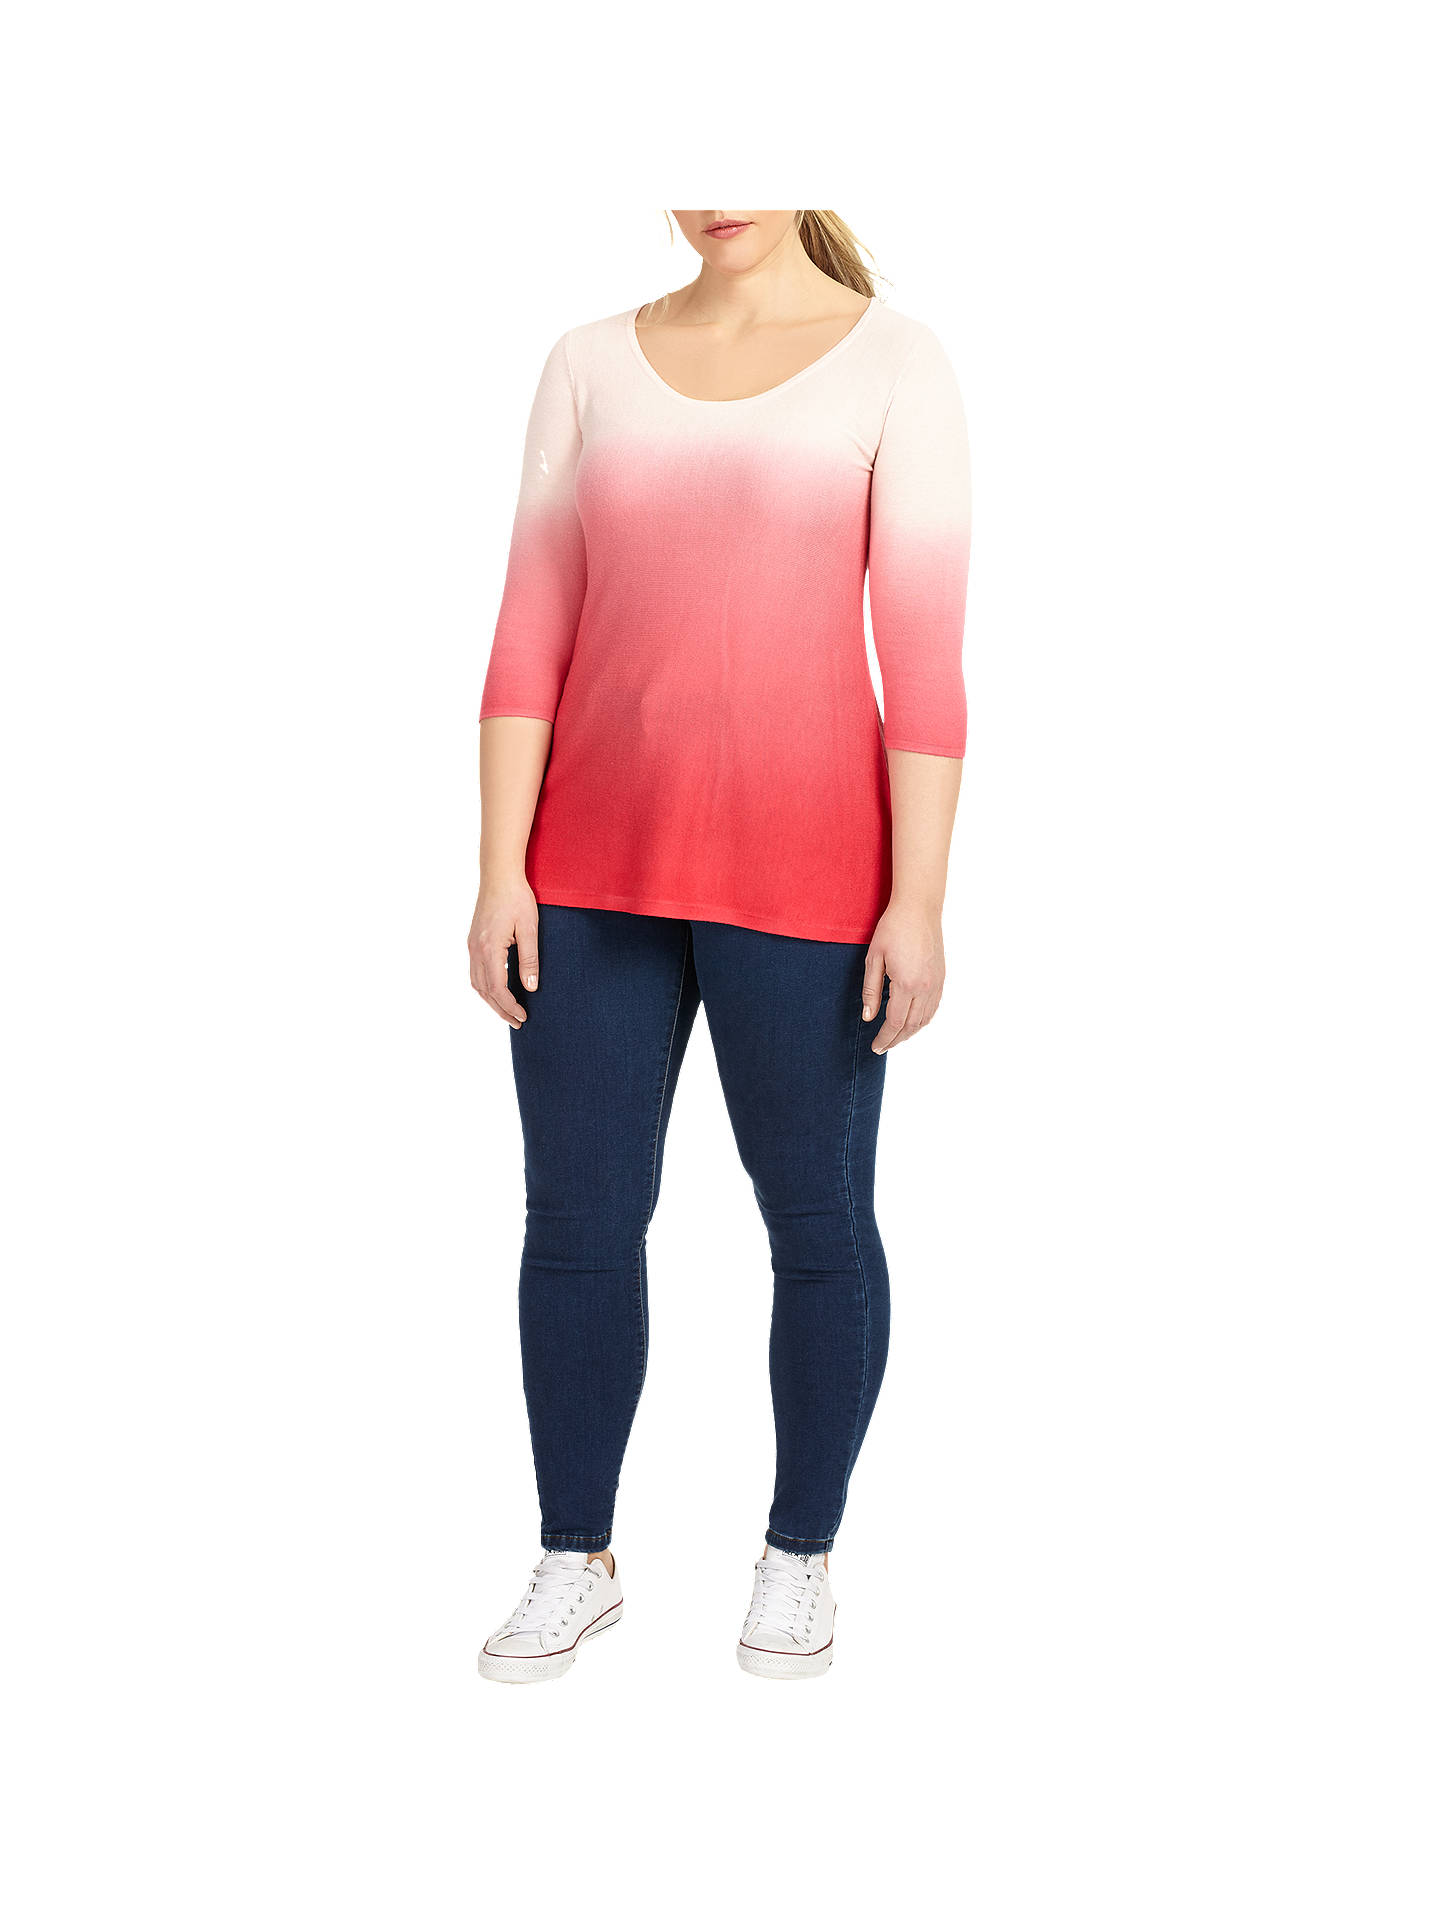 BuyStudio 8 Olga Ombre Jumper, Pink, 12 Online at johnlewis.com